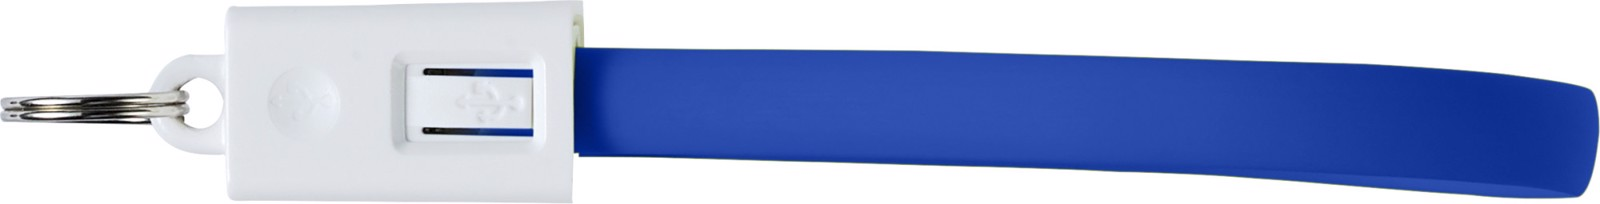 ABS charging cable - Cobalt Blue